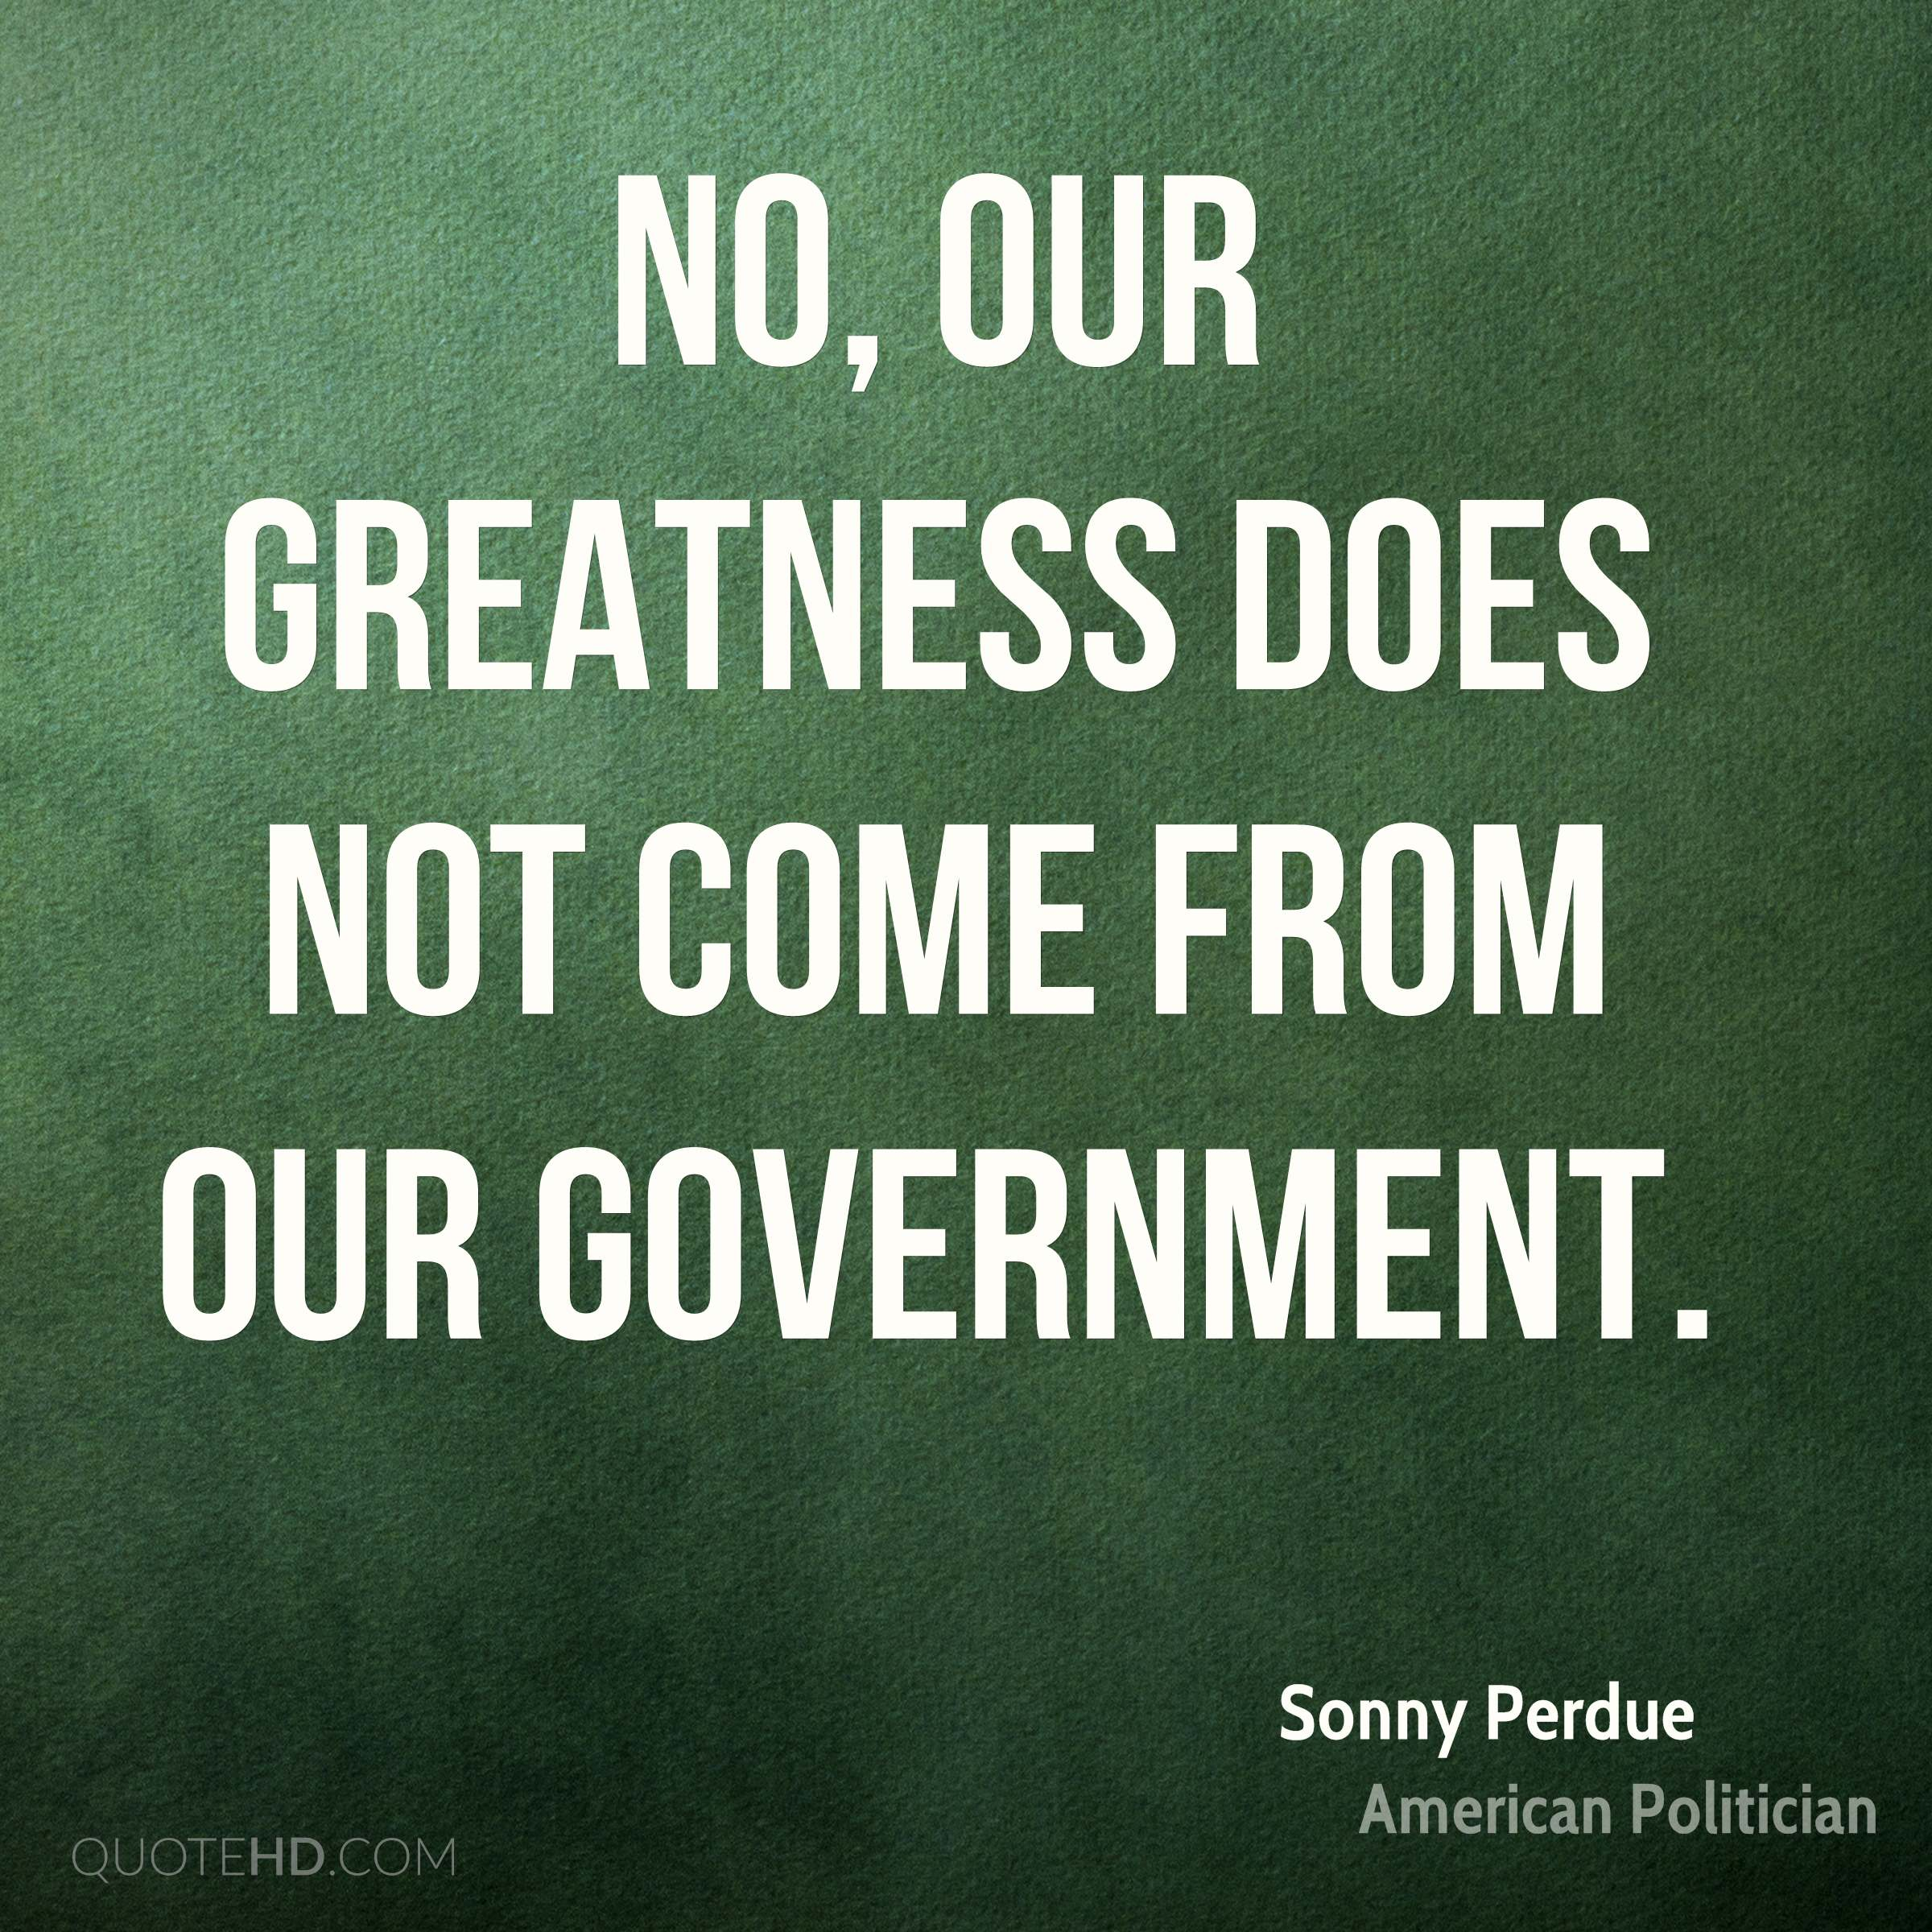 No, our greatness does not come from our government.